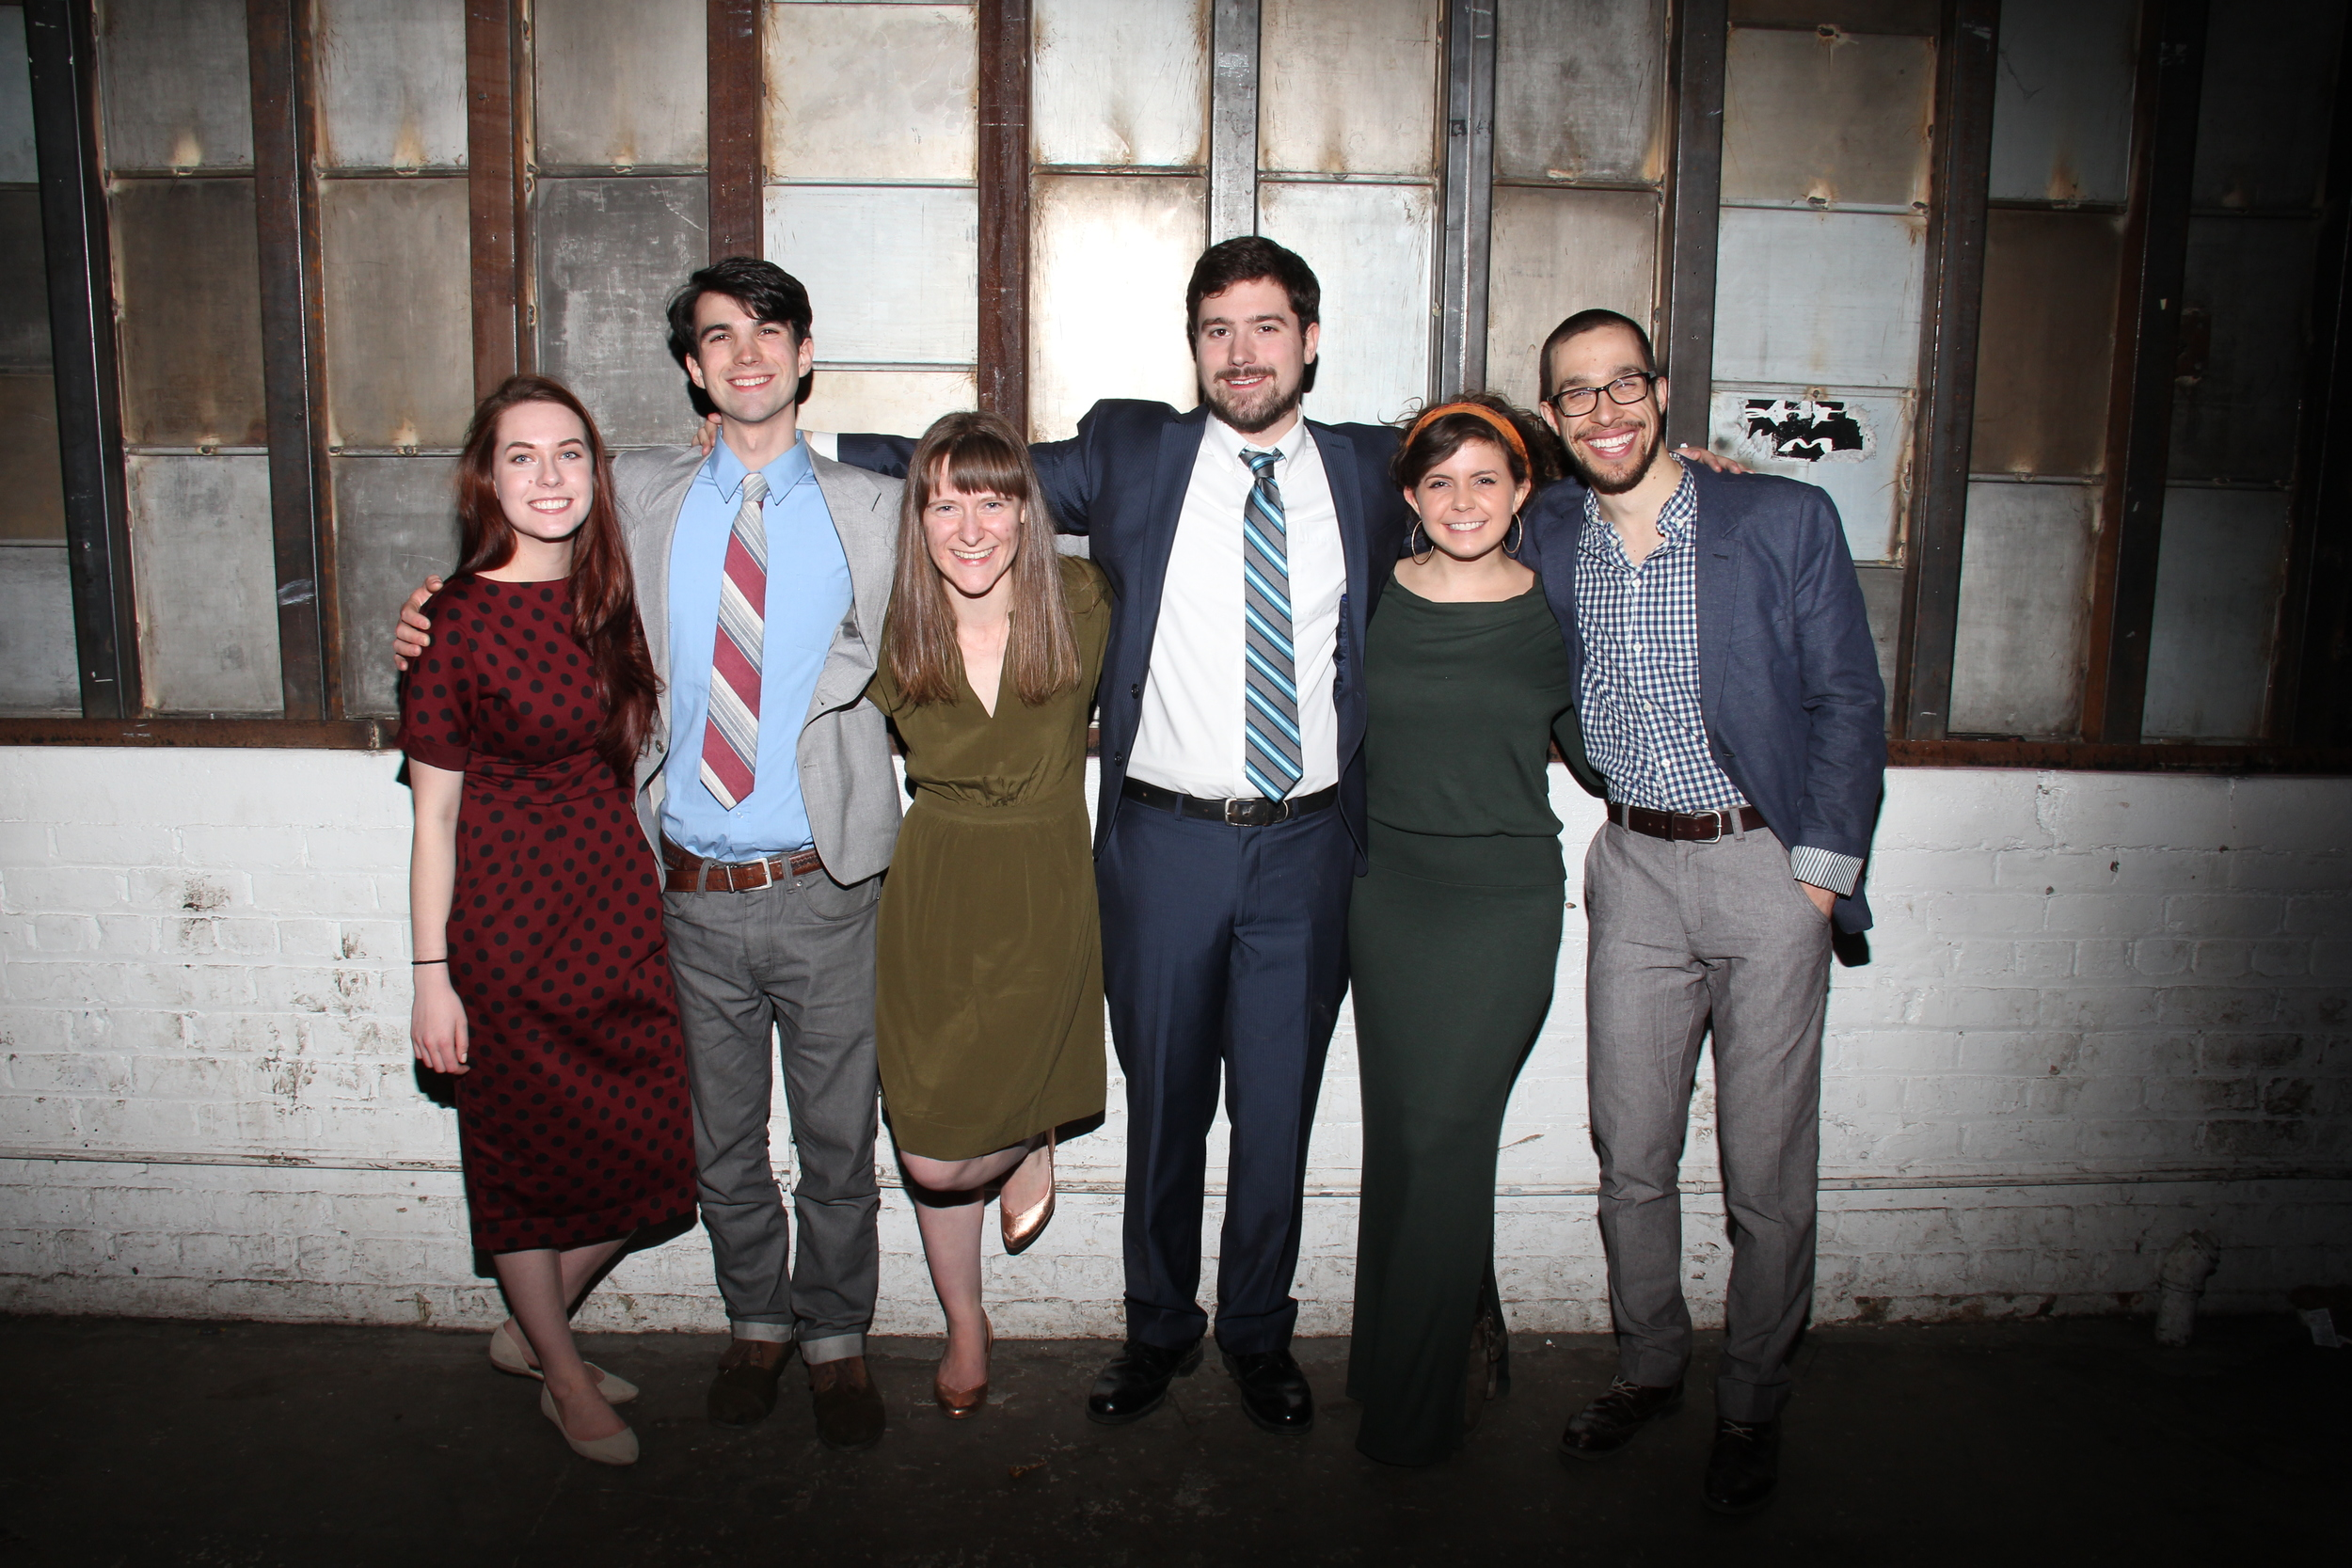 Production Designer, Katy Sullivan. Composer, Daniel Eggert. Director/Producer, Meredith Dobbs. Co-writer/Director of Photography, Tony Eggert. Lead actors Mary Rose Naoum and Michael Lopetrone.